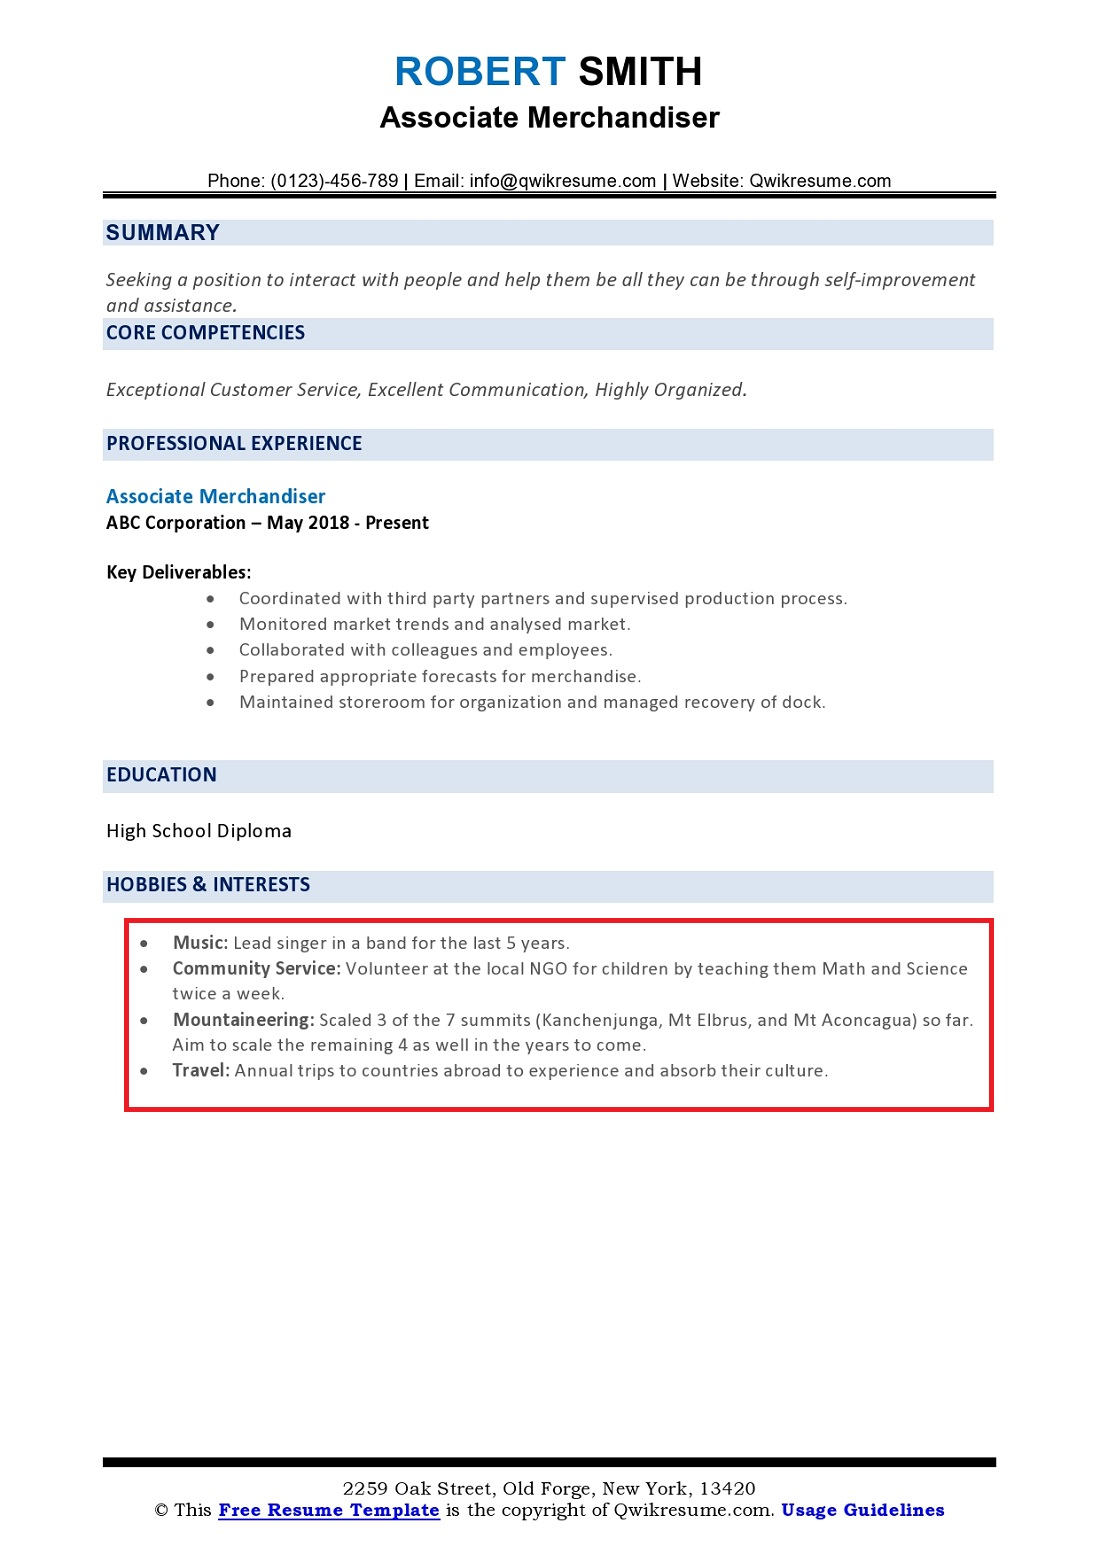 hobbies and interests on resume  how to list  examples